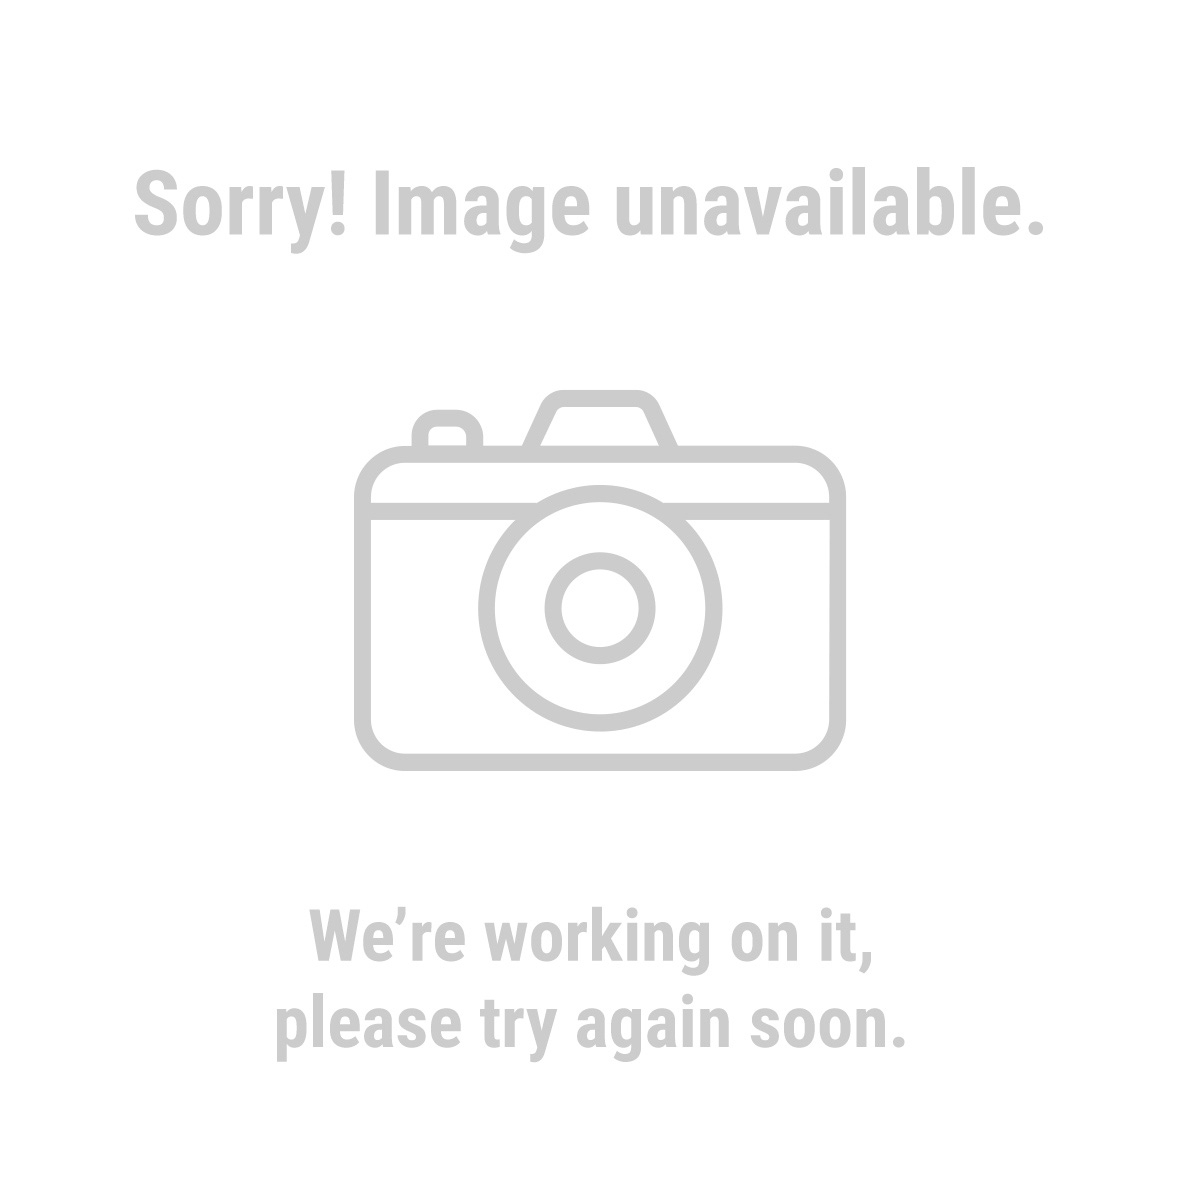 Predator Outdoor Power Equipment 62548 26 in. Front Tine Tiller